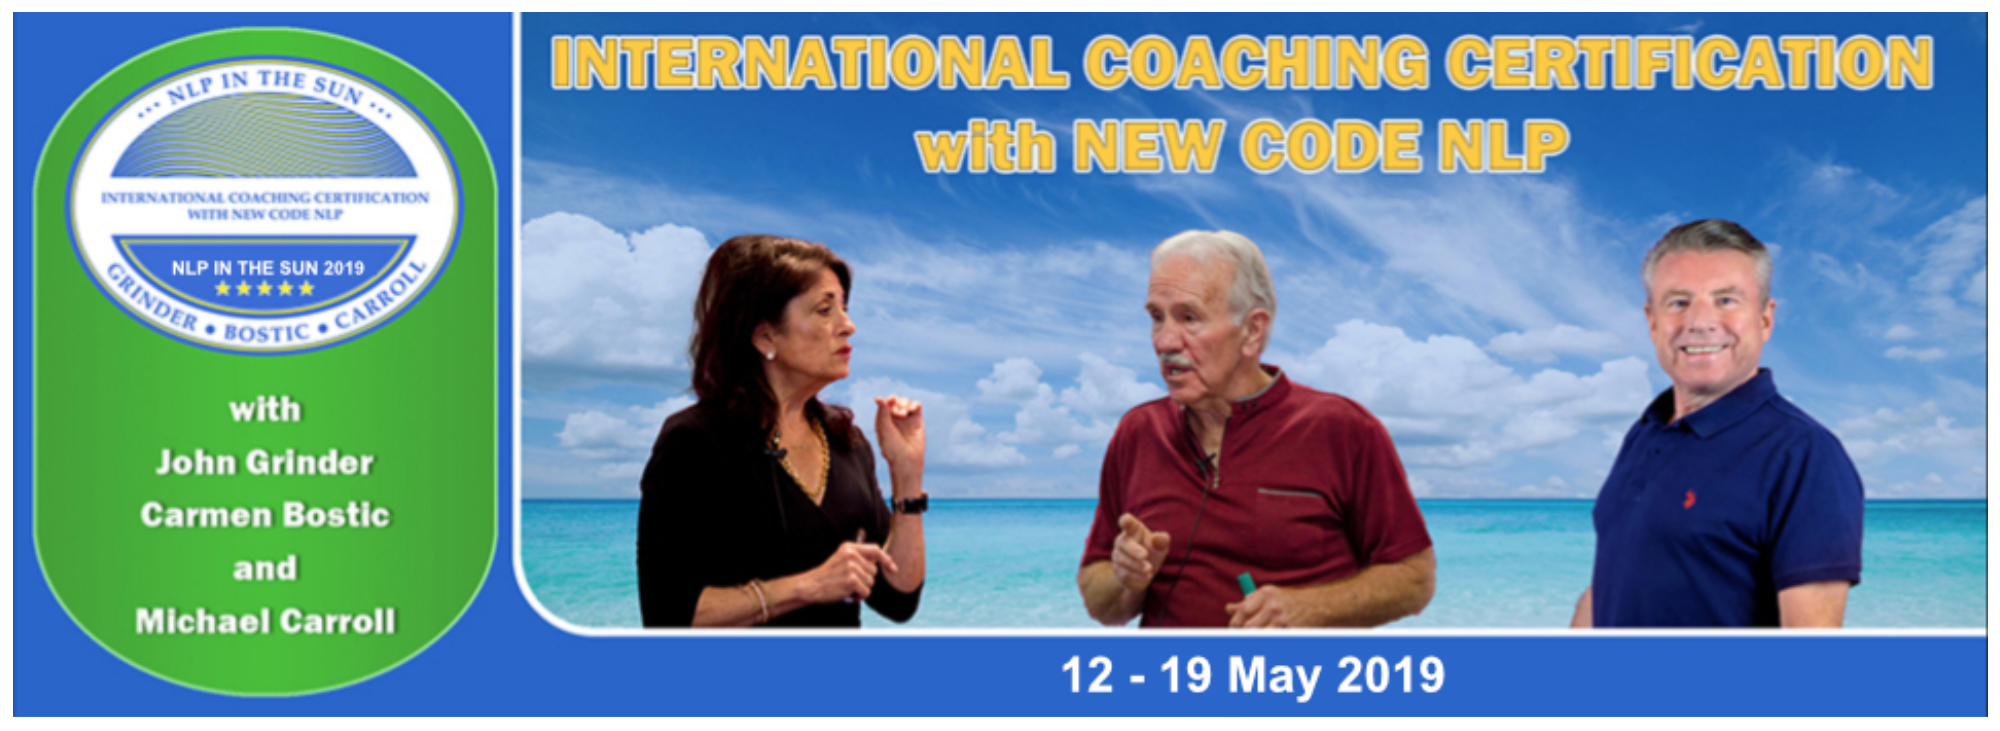 International Coaching Certification with New Code NLP (Portugal)